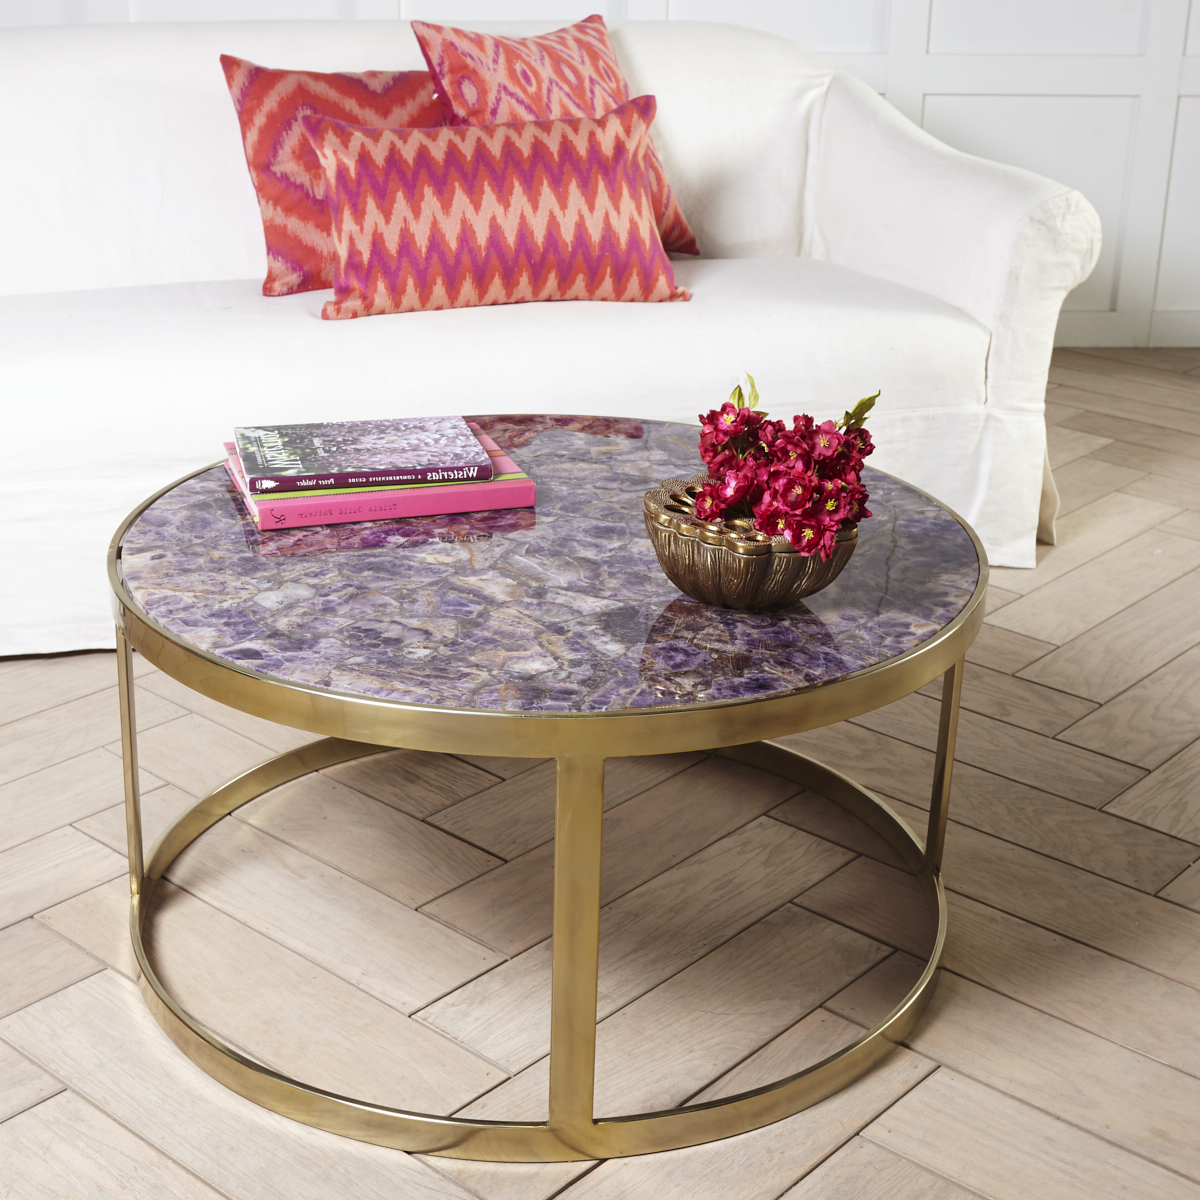 Broll Coffee Tables For Best And Newest Stone Top Coffee Table (Gallery 17 of 20)